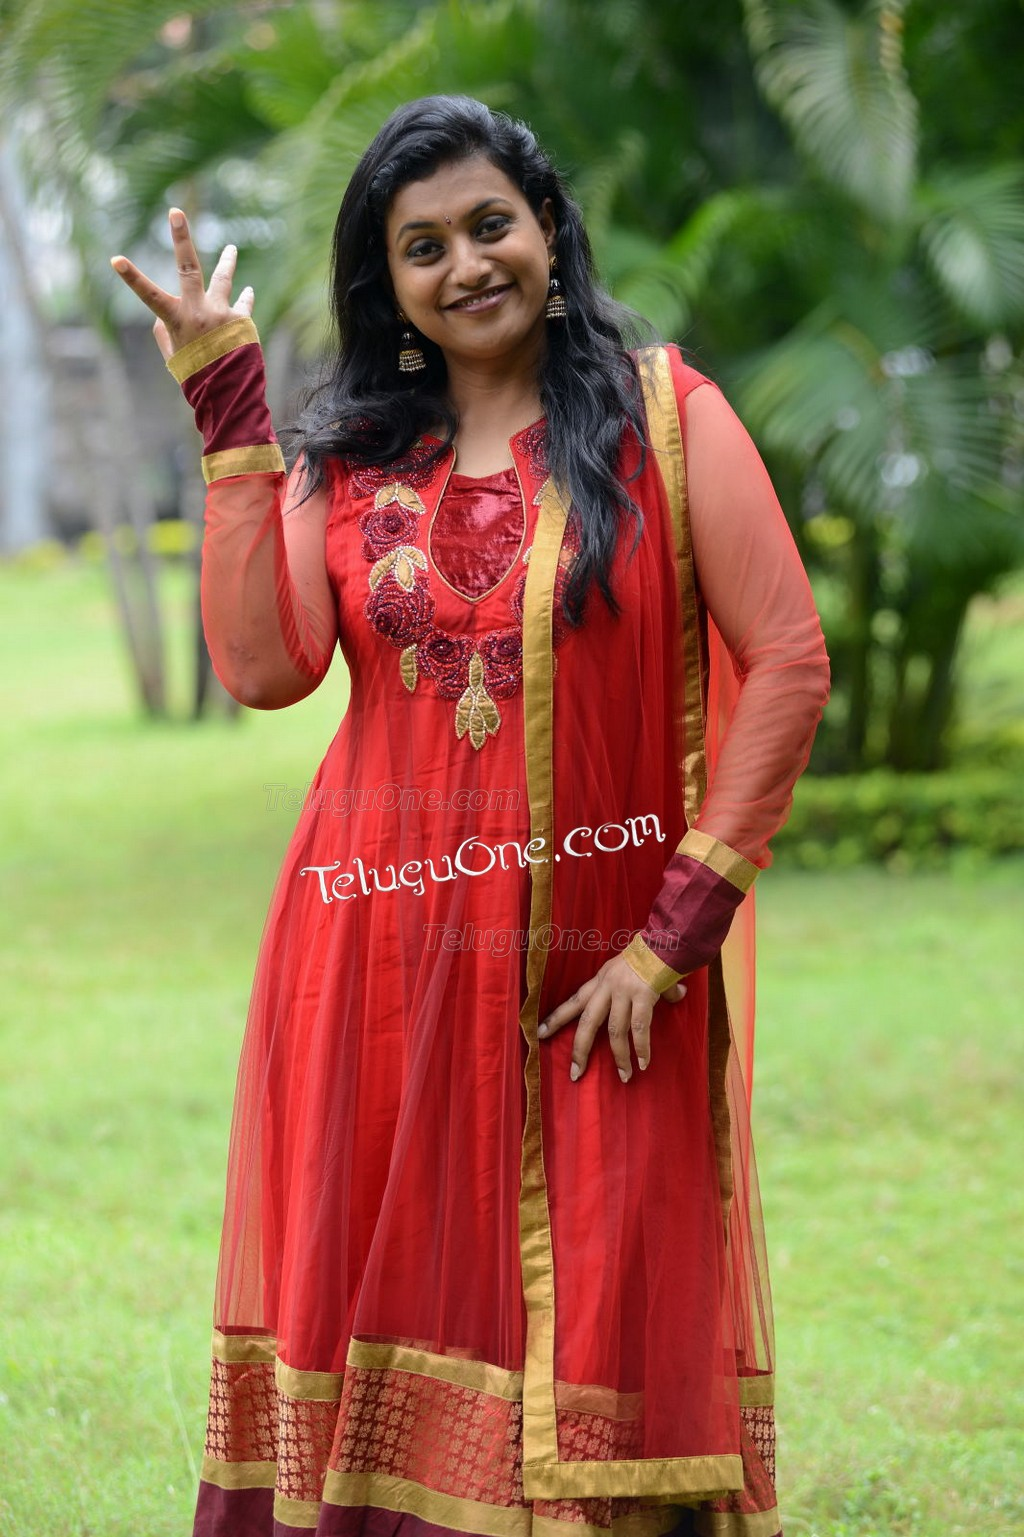 Chennai Aunty Pundai Nakki Stills Are Best To See When You Look For ...